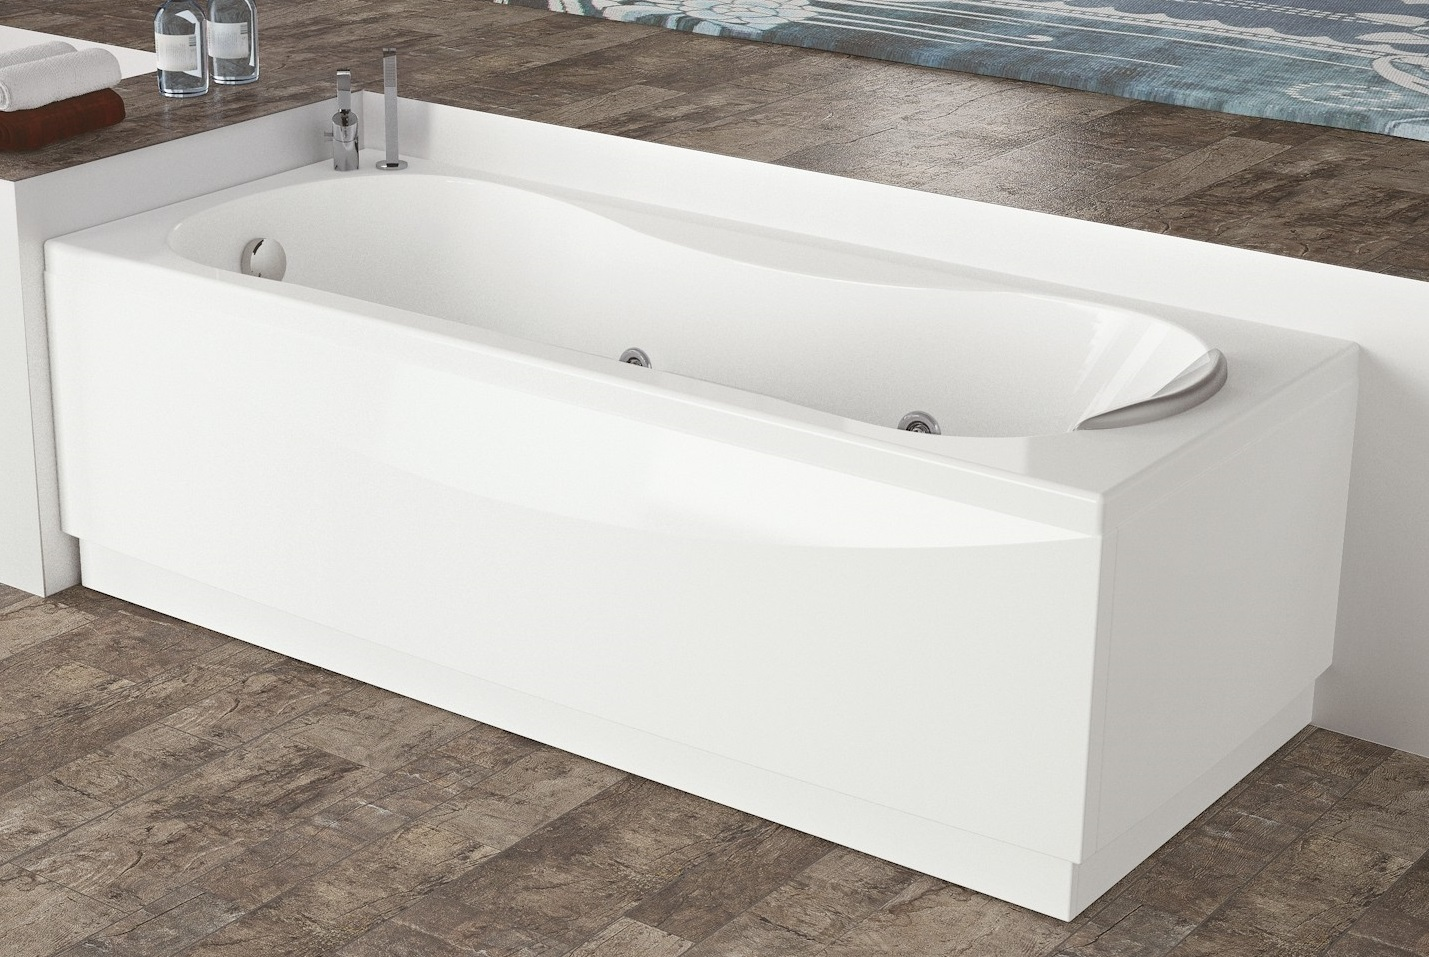 Vasca Da Bagno Ad Angolo Ideal Standard : Vasca da bagno ideal standard interesting with vasca da